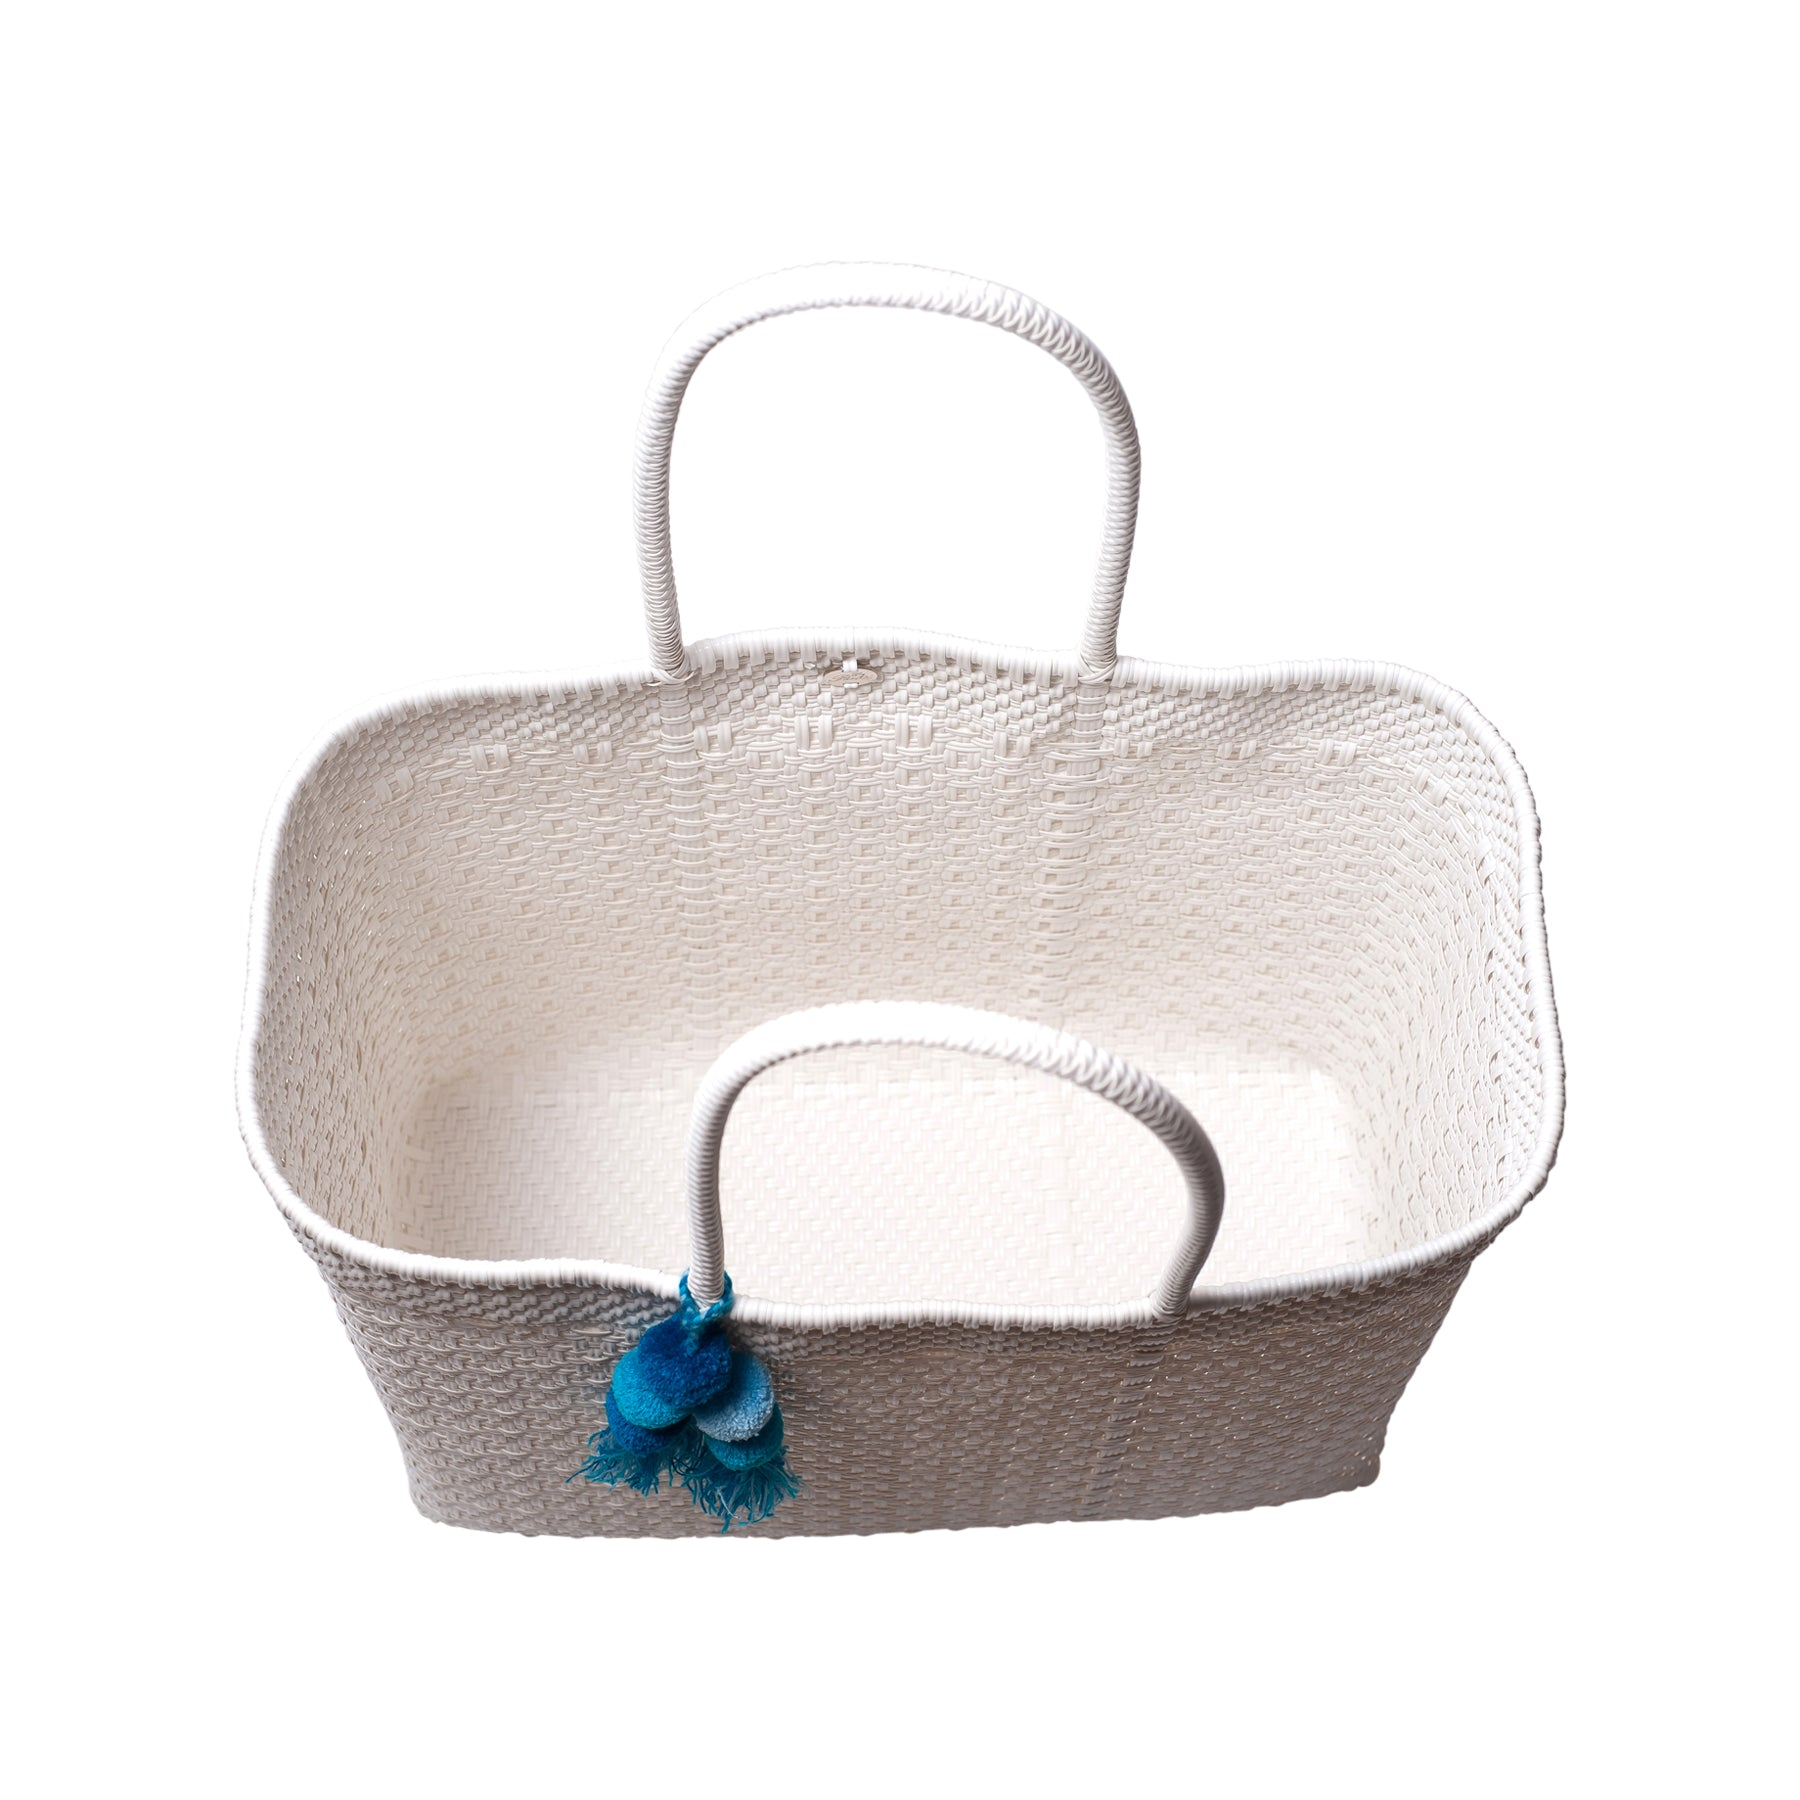 Large Open Woven White Tote